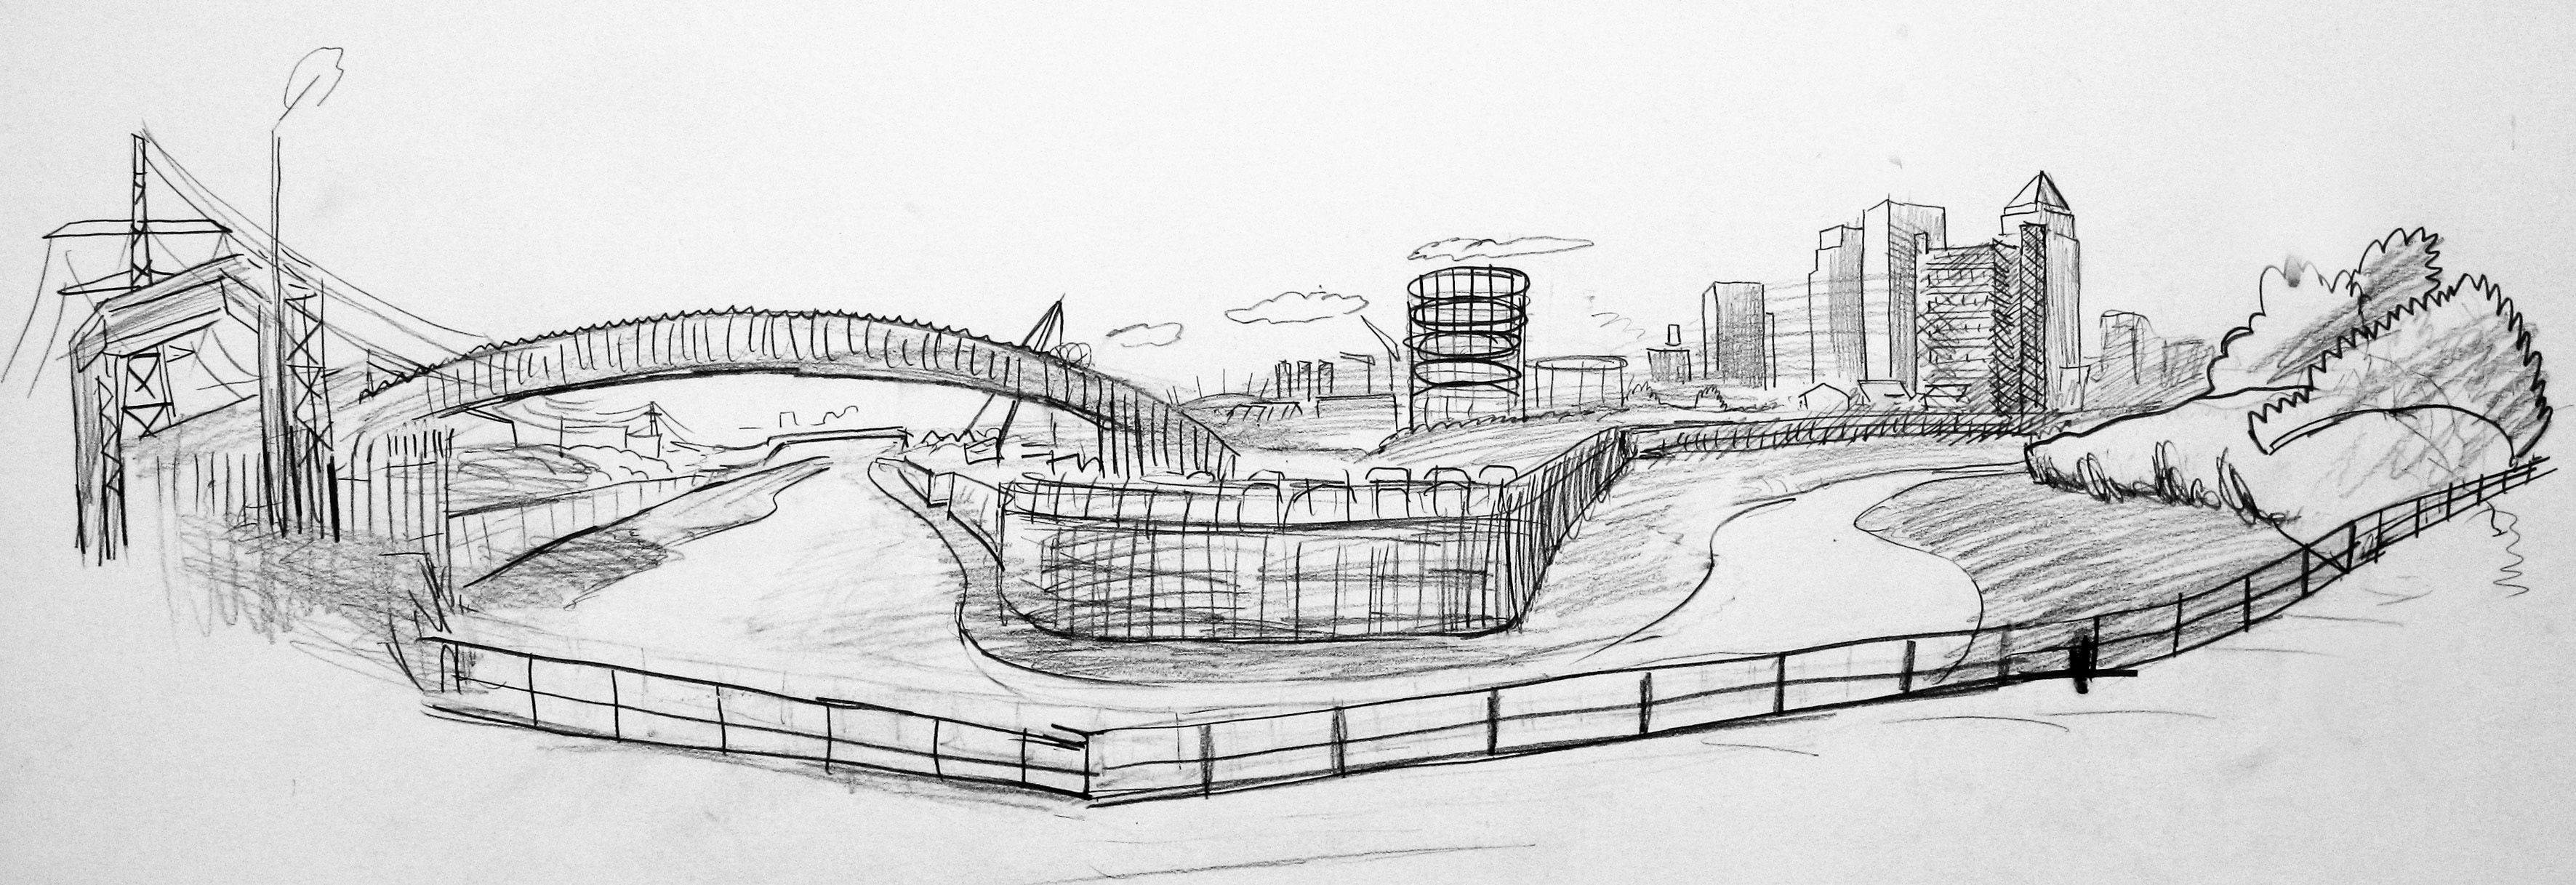 London drawing, Observational drawing